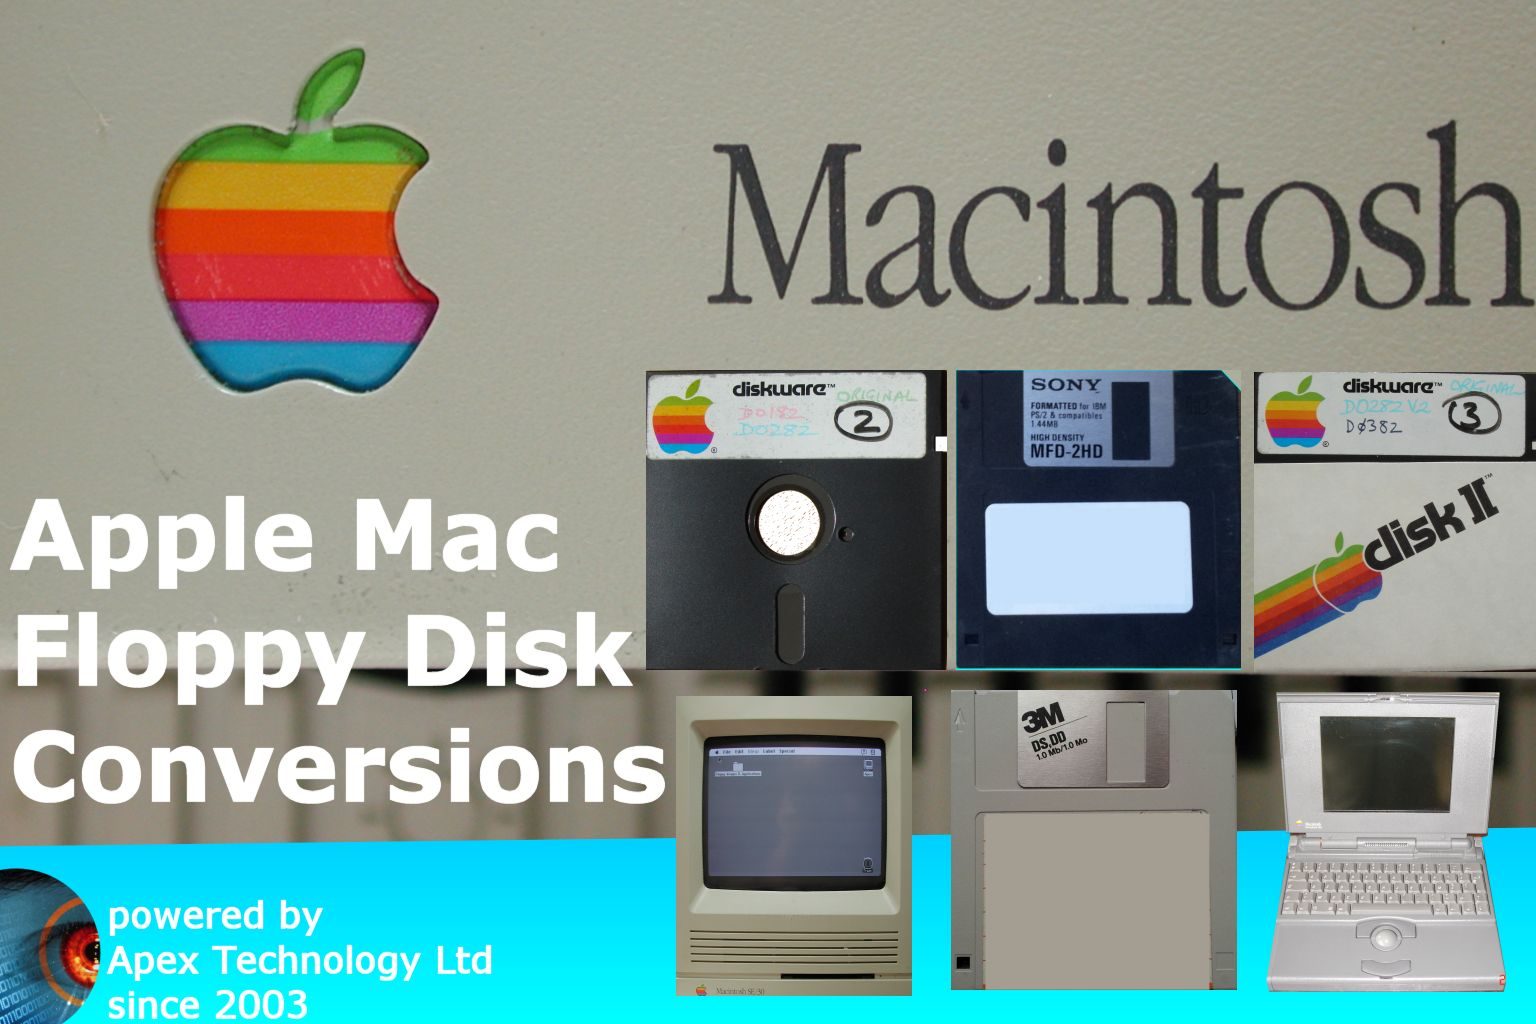 Apple Mac Floppy disk conversions including Macintosh 3.5 and 5.25 inch discs